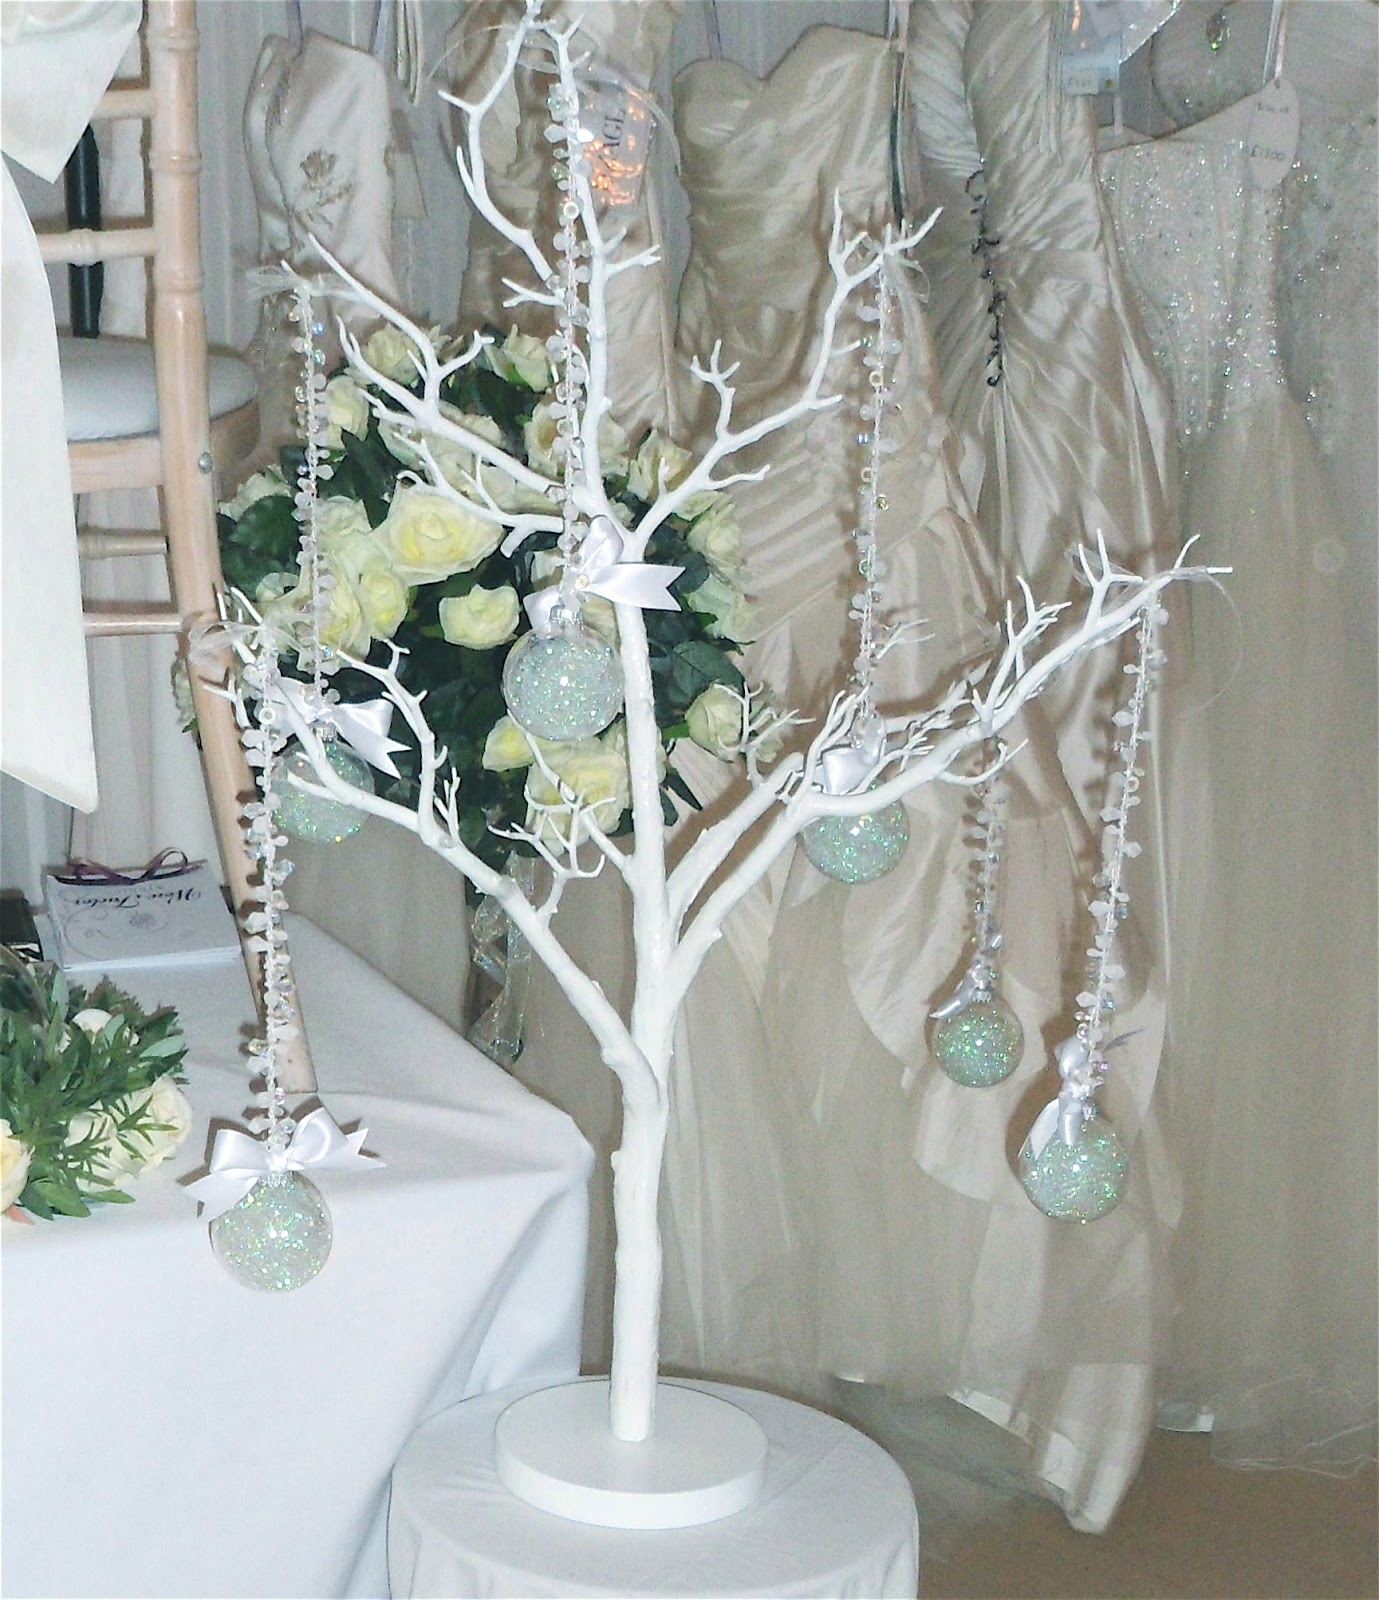 Our Newest Centrepieces Are These Lovely White Manzanita Trees